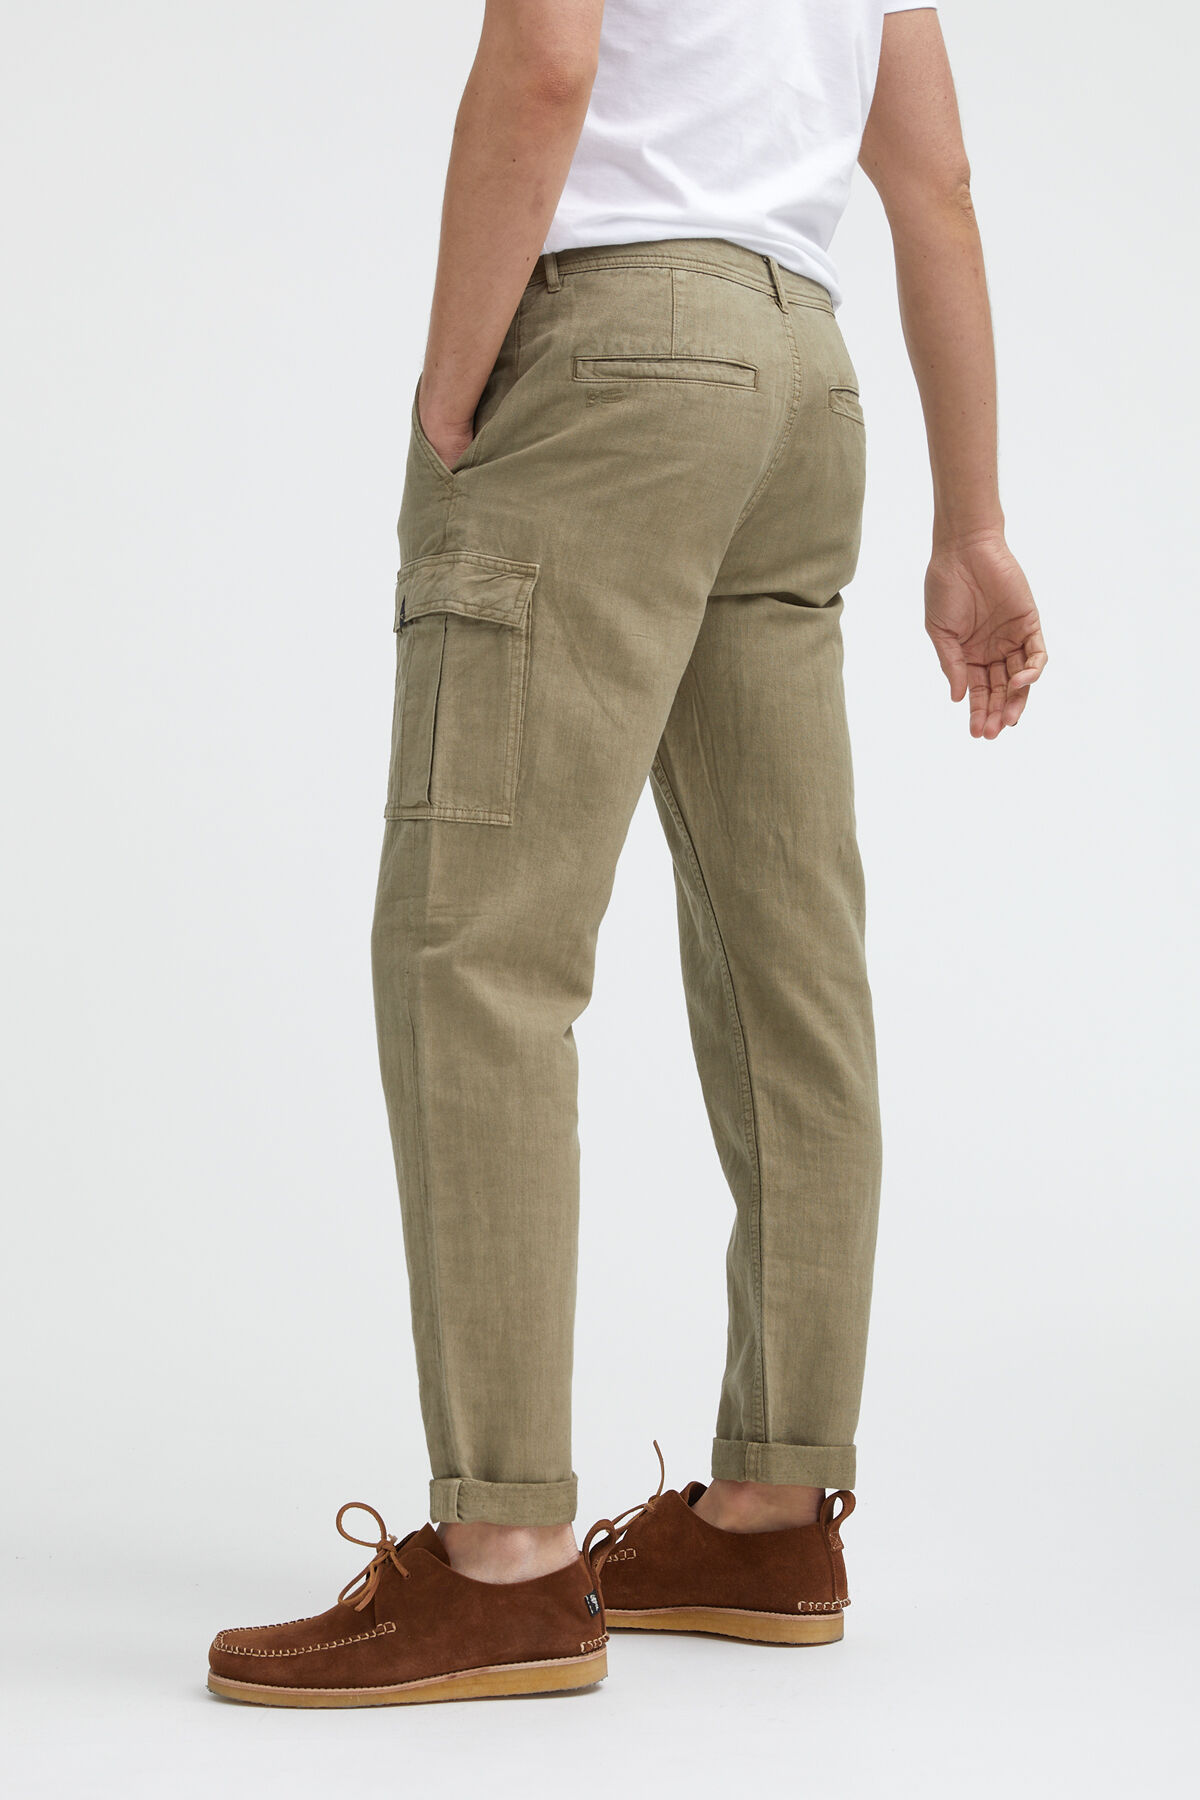 CARGO PANT Cotton & Linen - Relaxed Fit